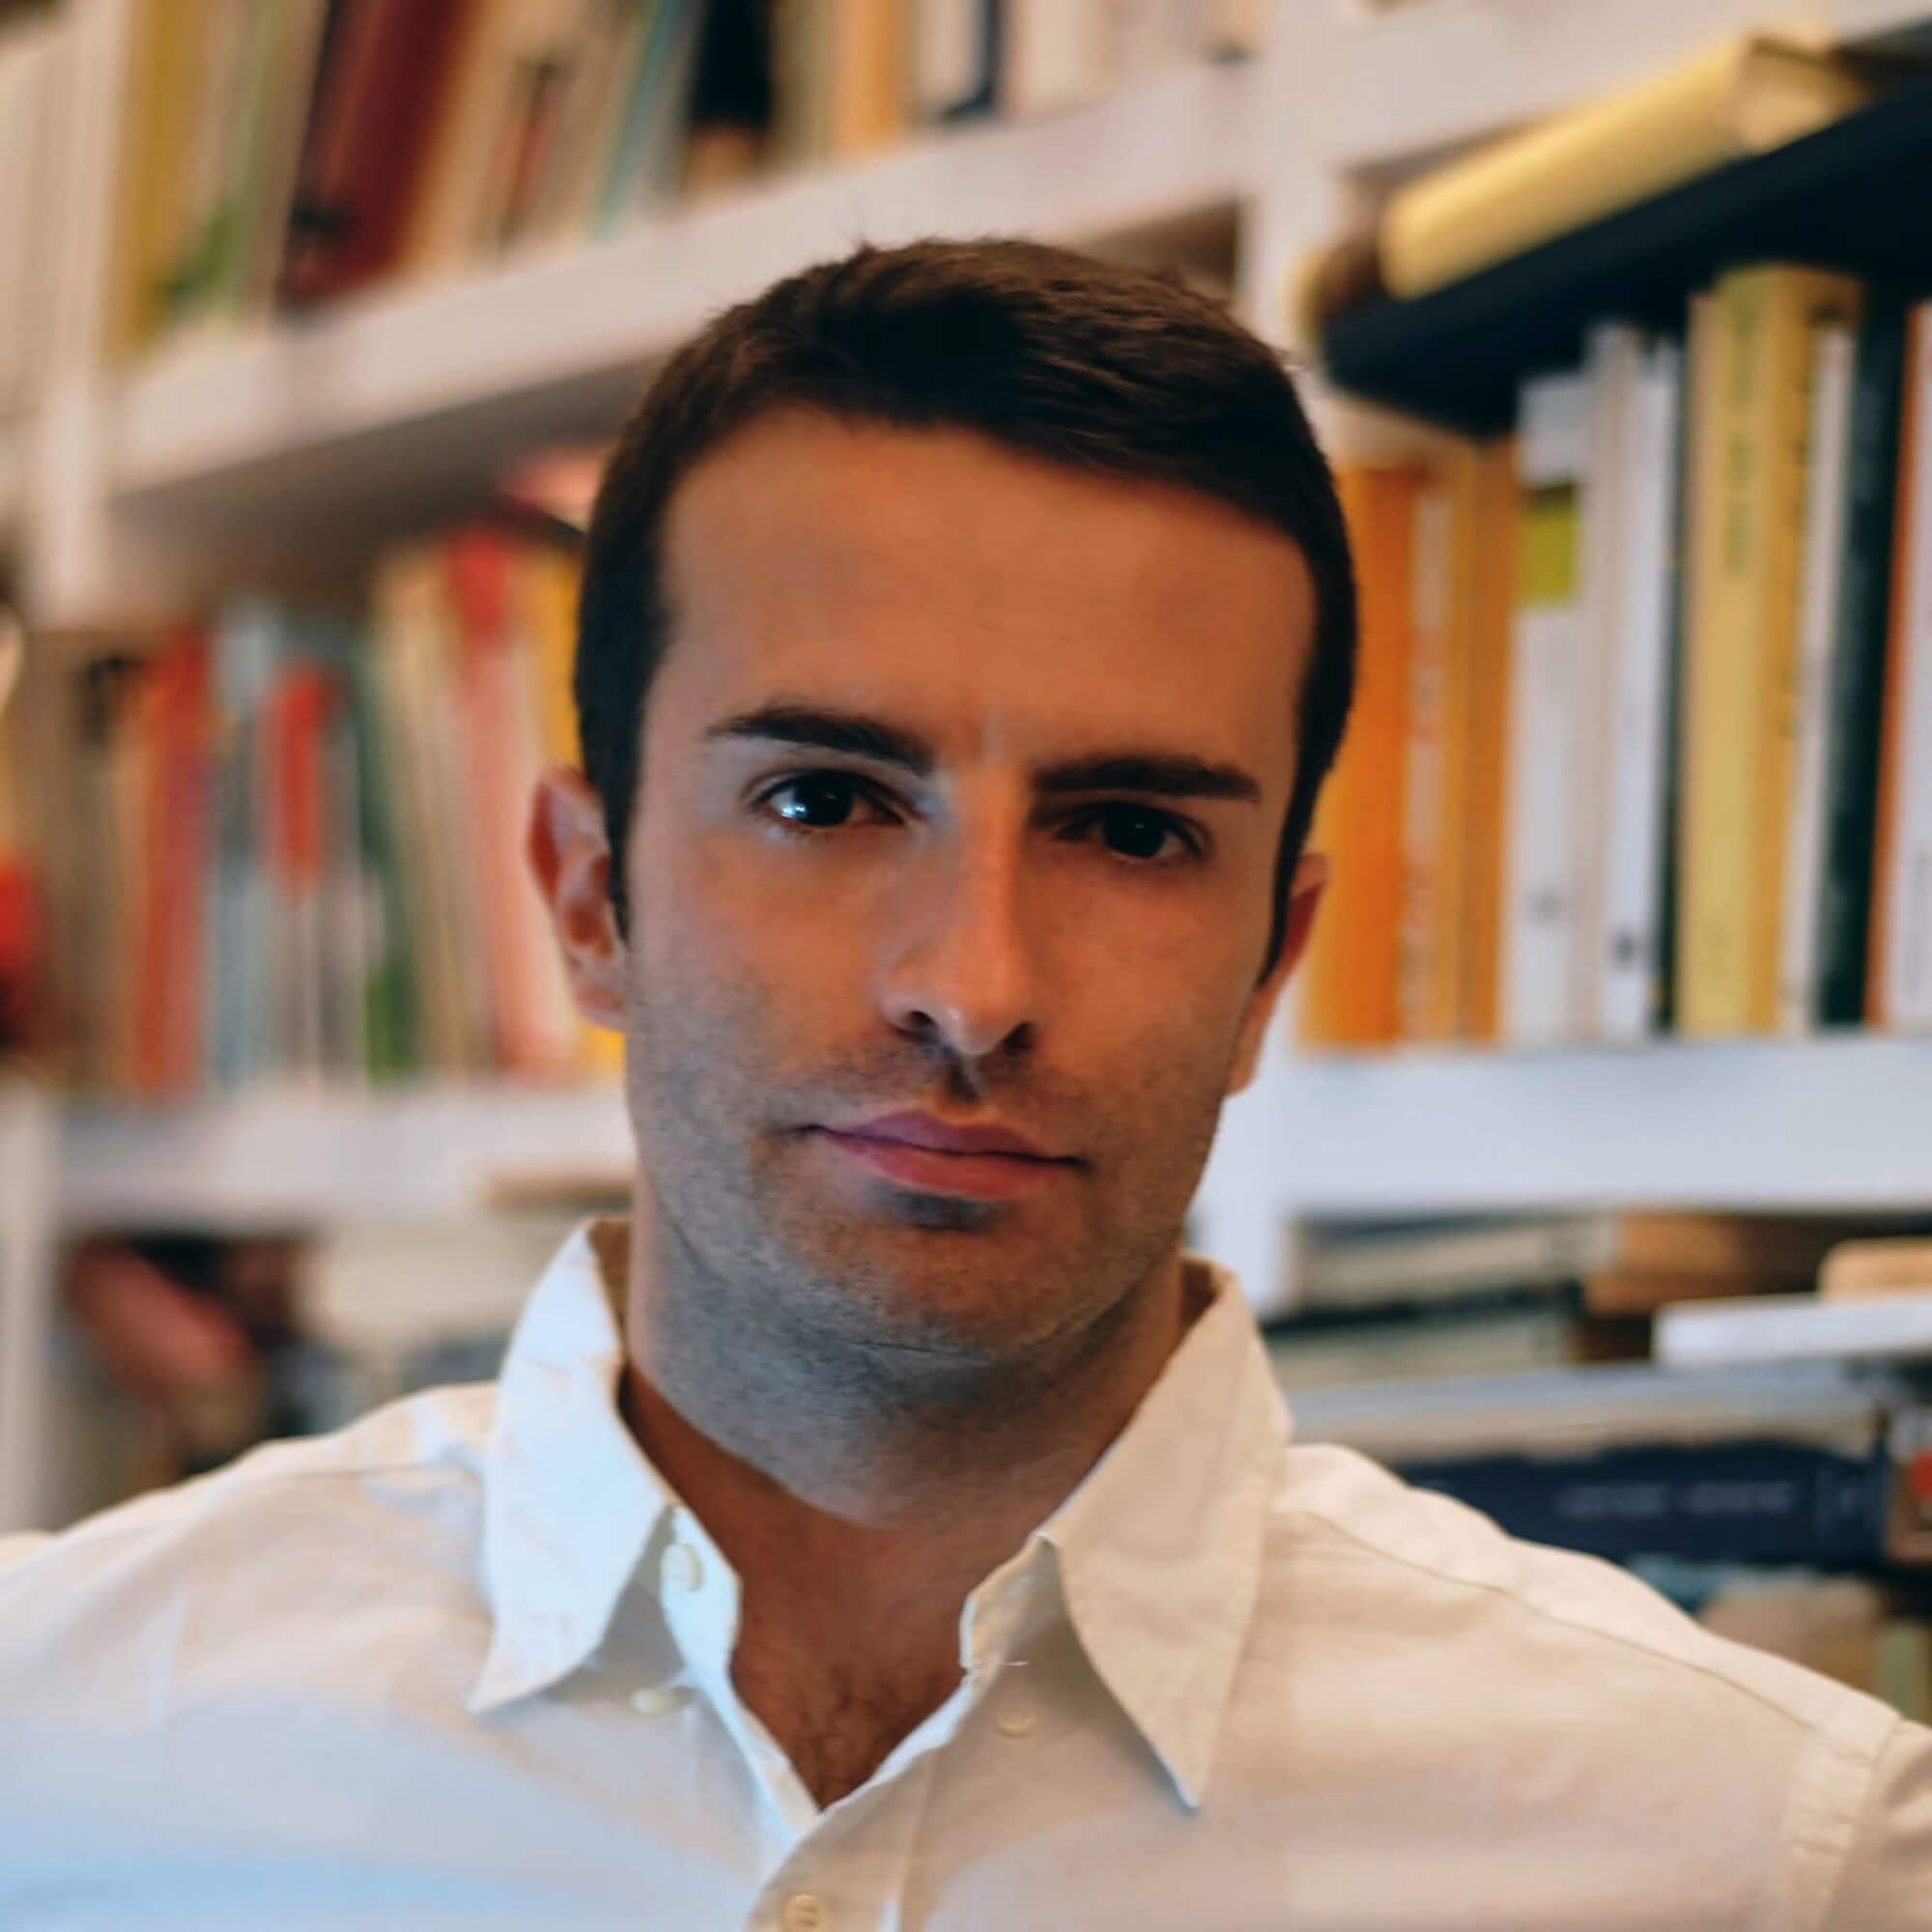 Francesco wearing a white shirt, standing in front of a bookcase.